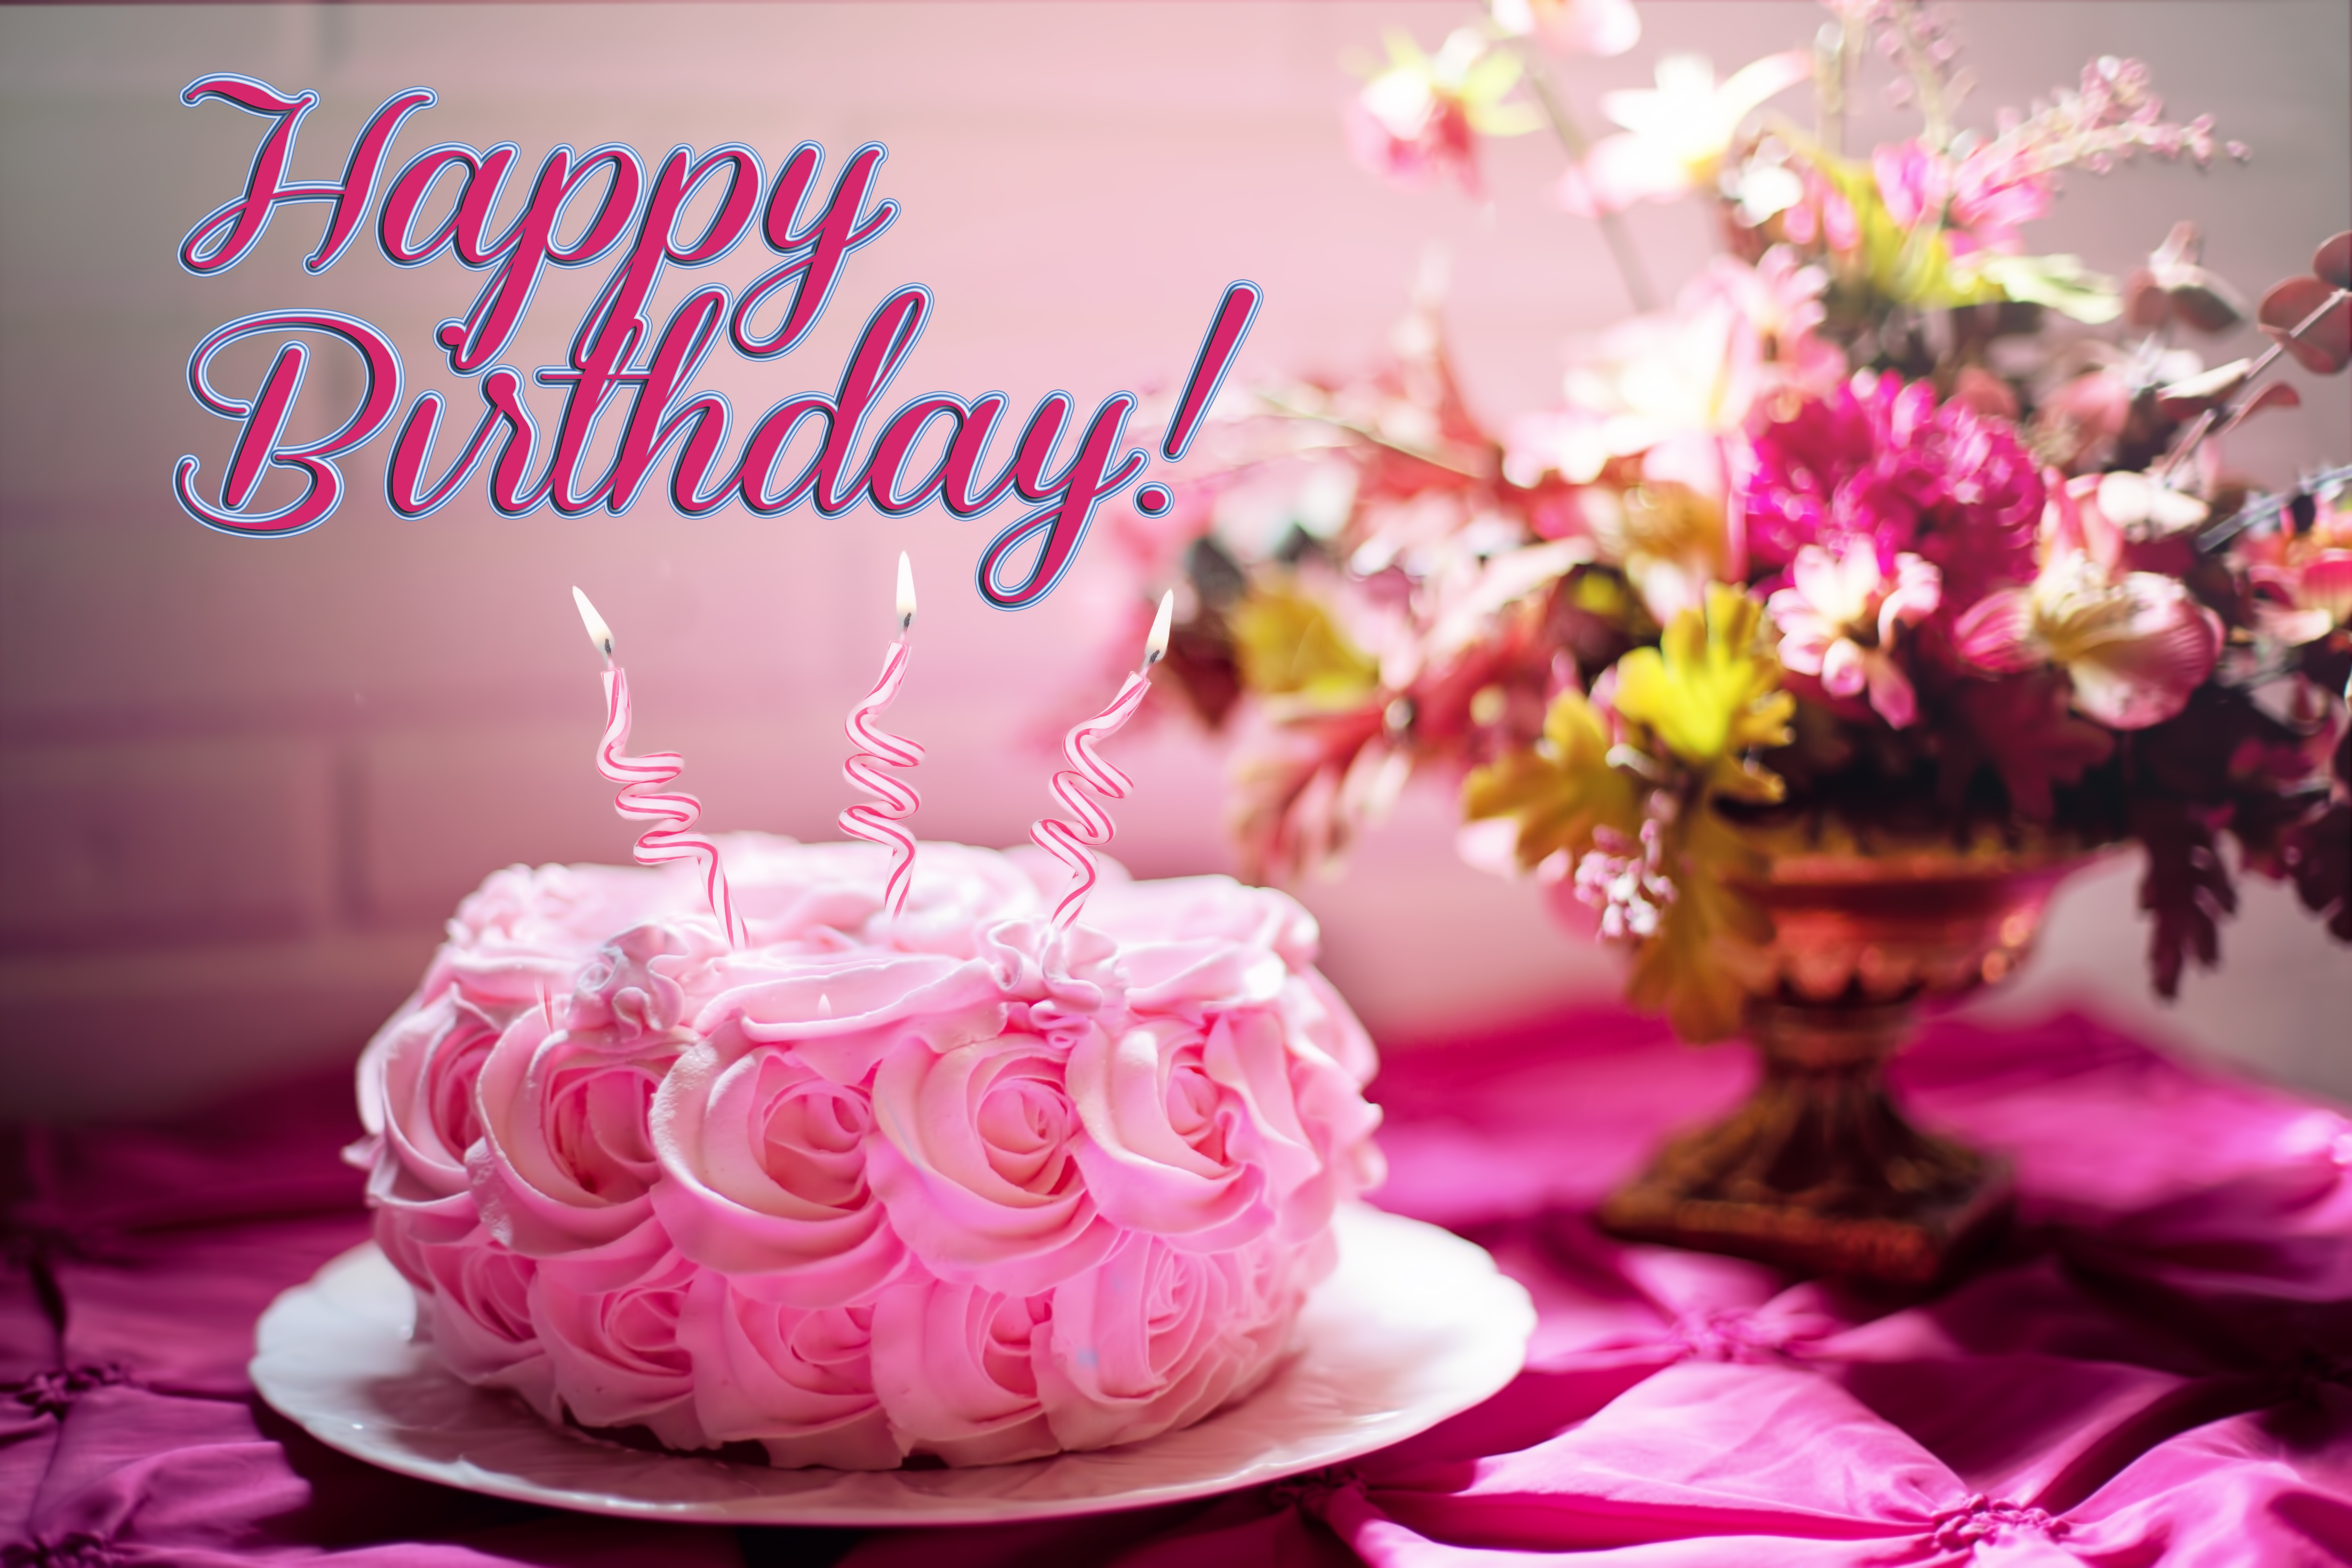 46 4k ultra hd birthday wallpapers | background images - wallpaper abyss